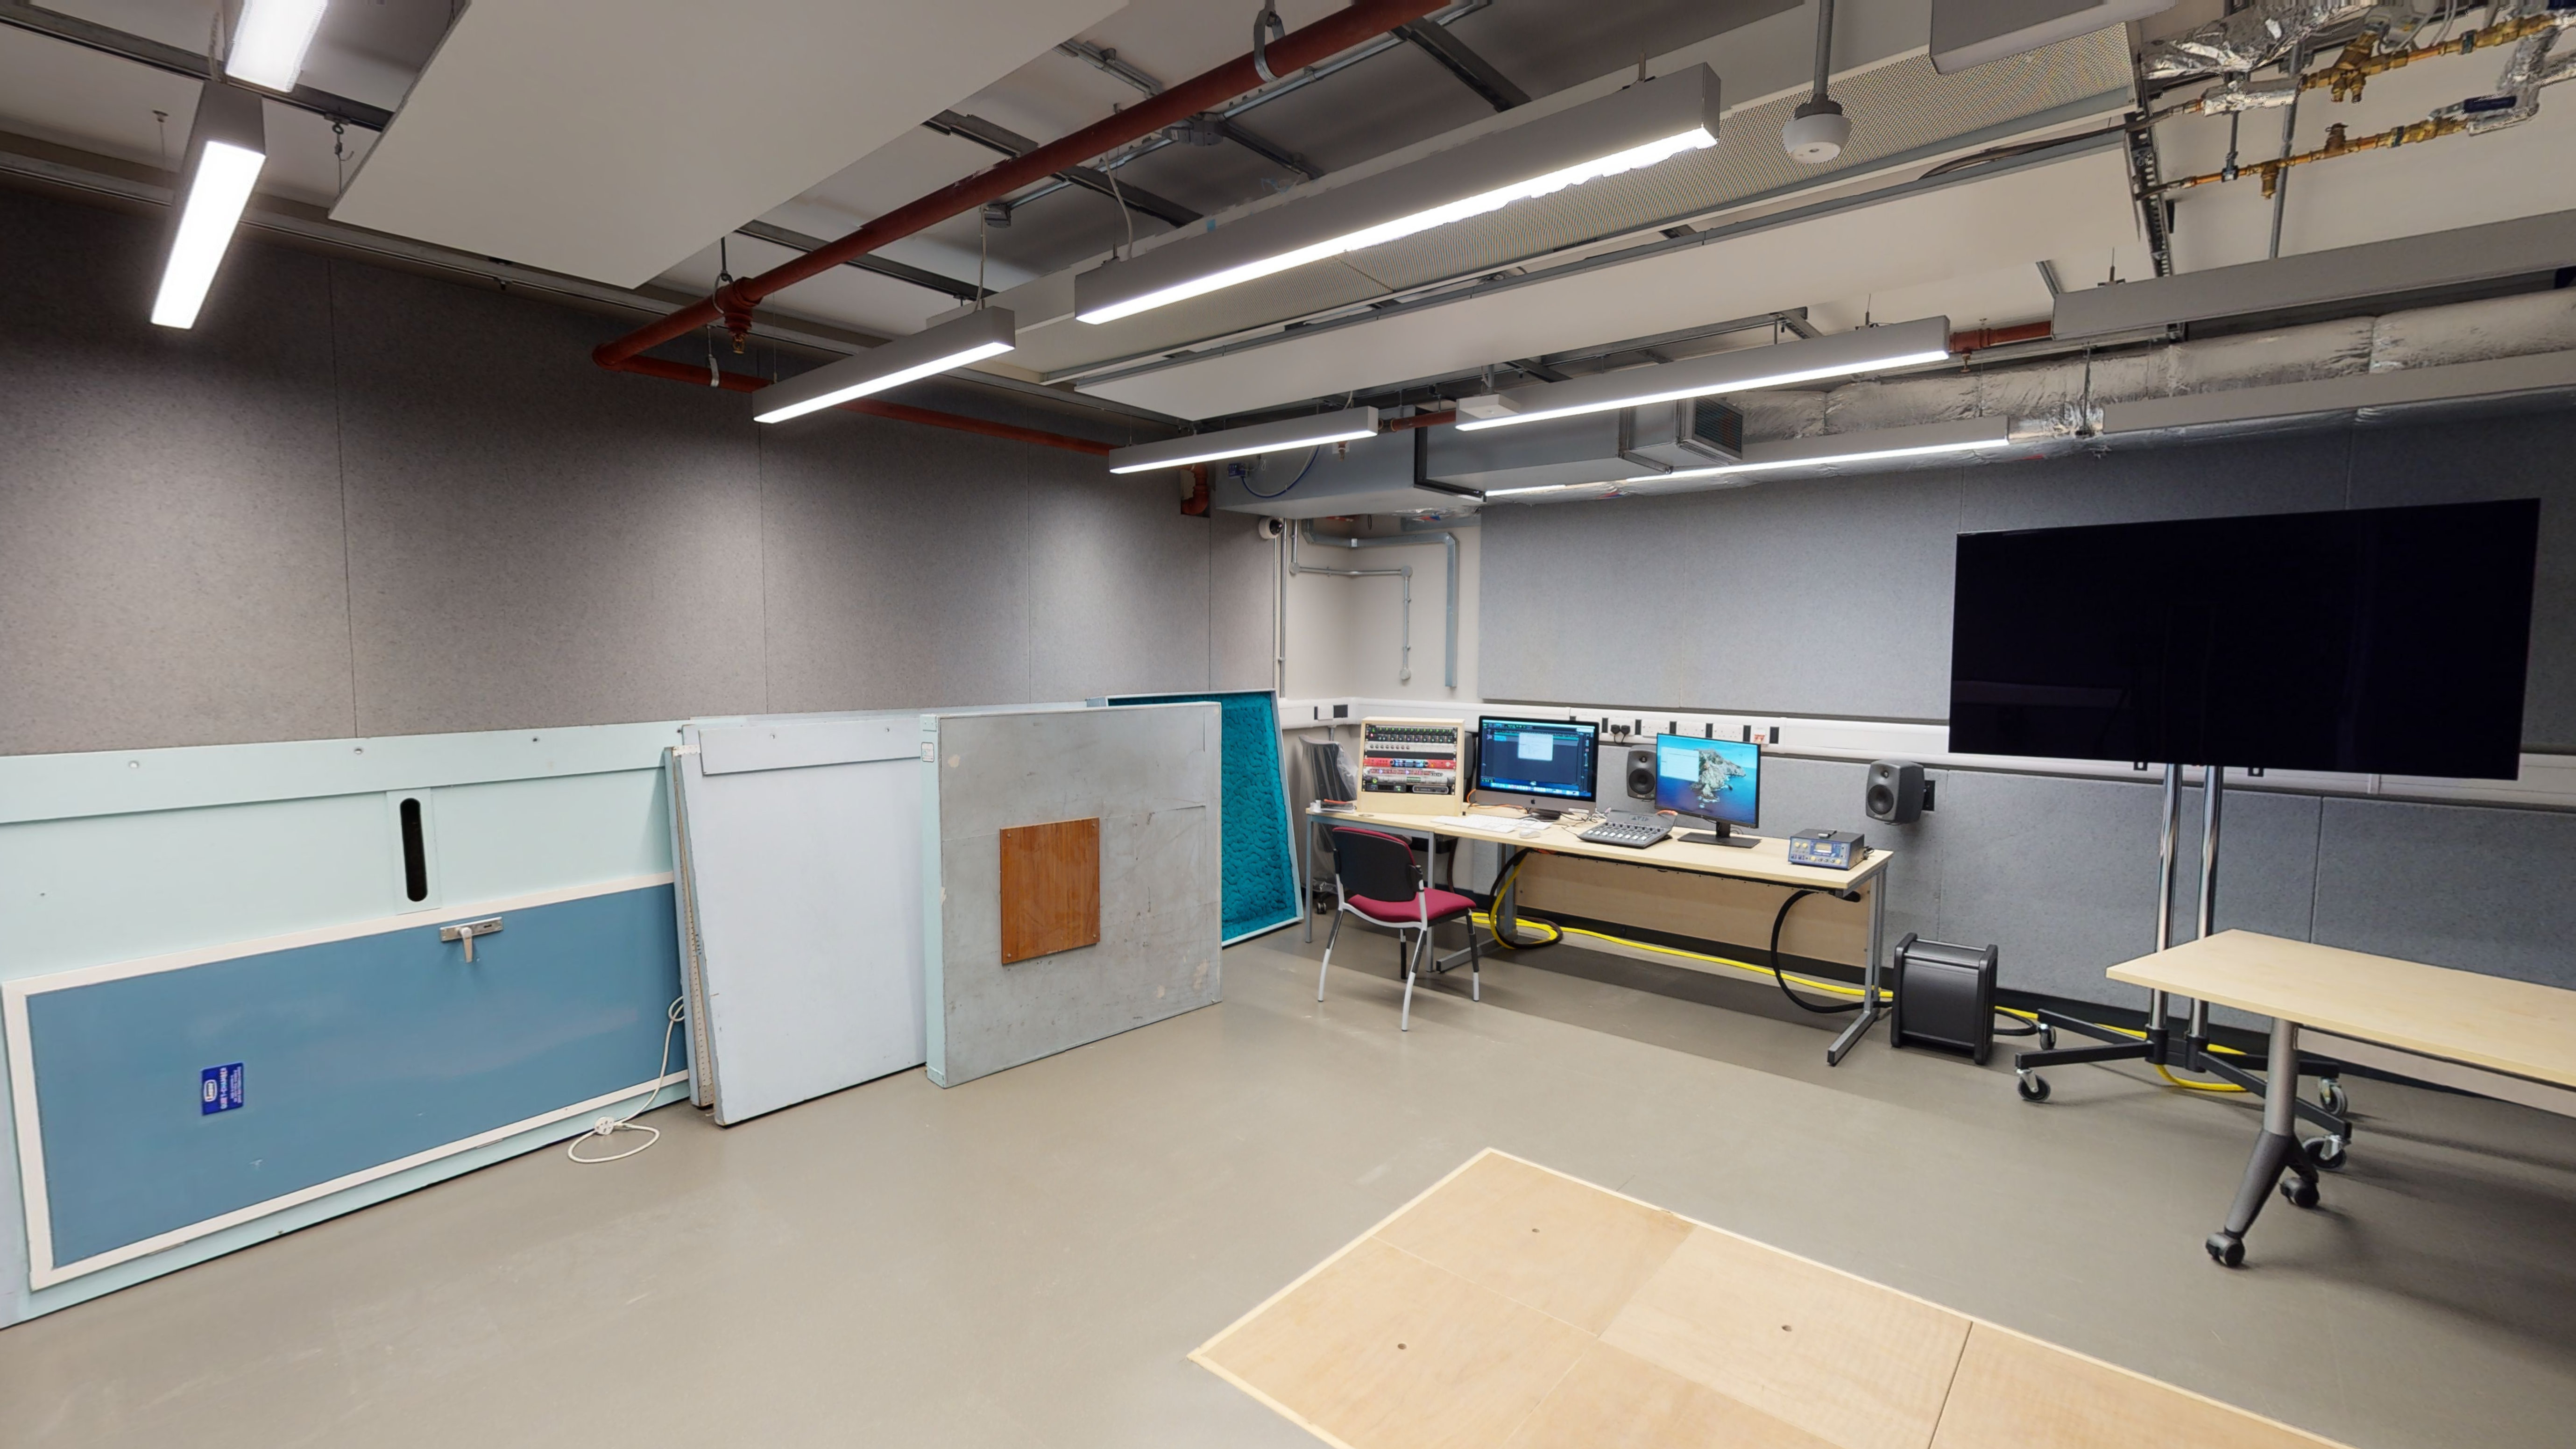 Classroom style space with monitors, large screen, doors for making sound effects and covered over pit in the floor